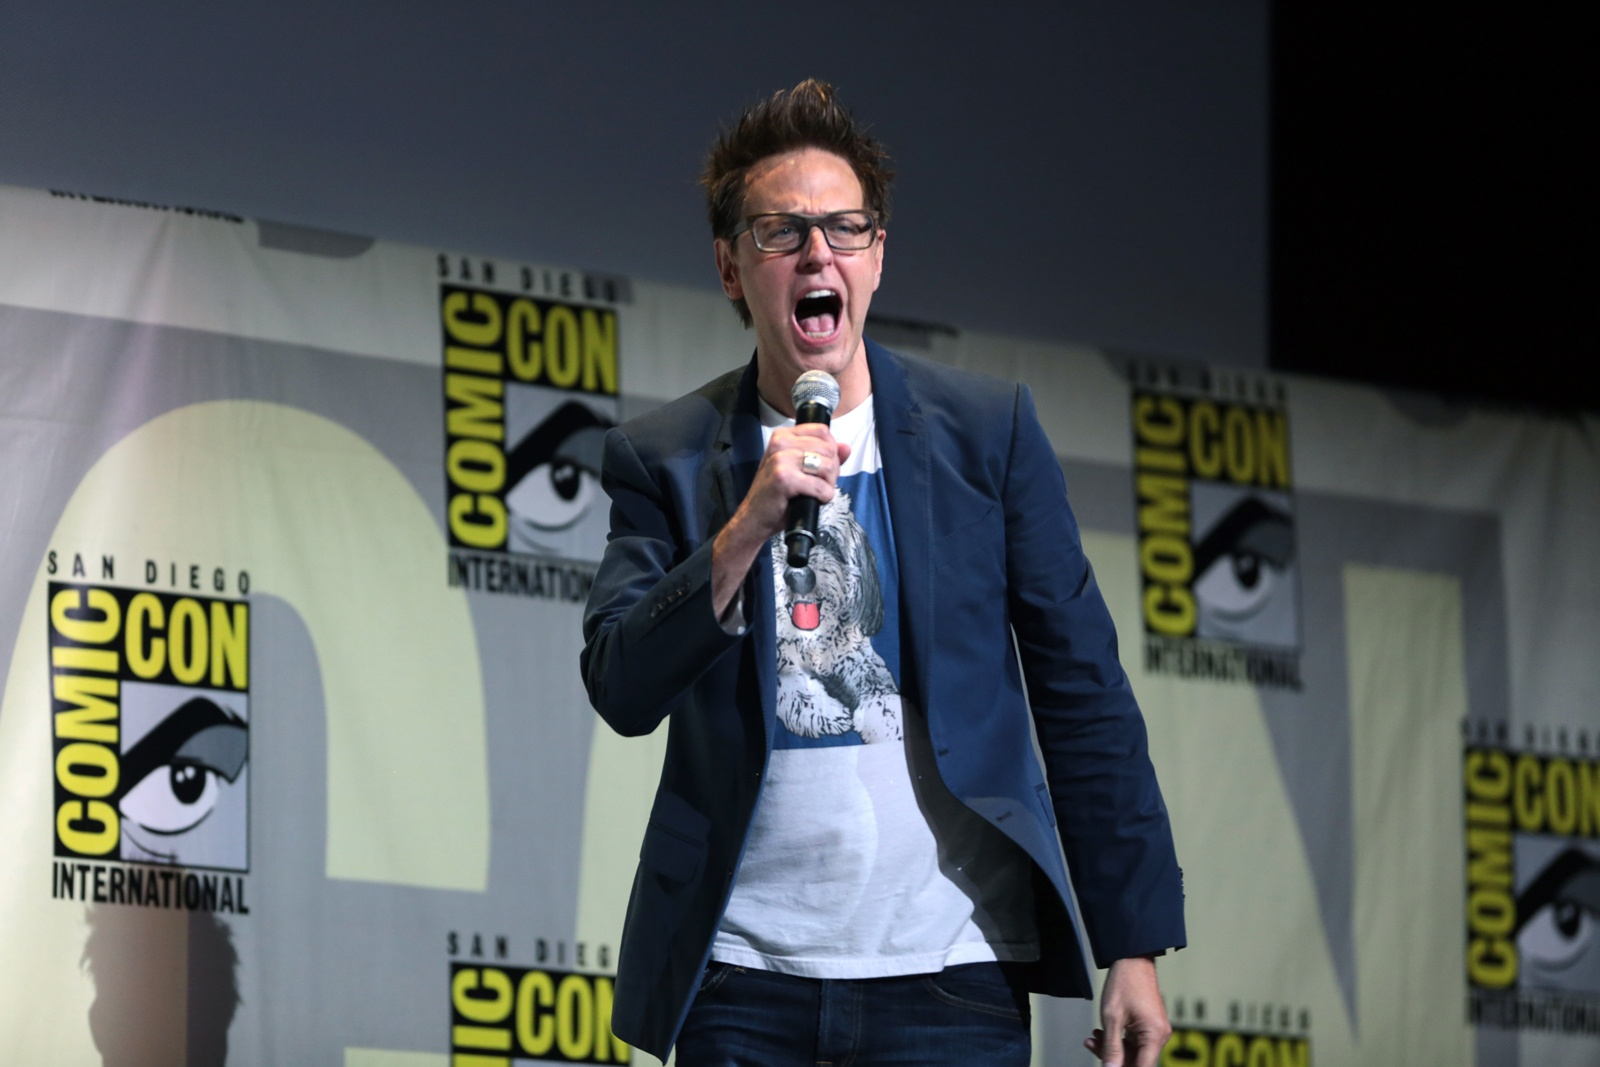 The 'ranking' of James Gunn's best films according to specialized critics and moviegoers